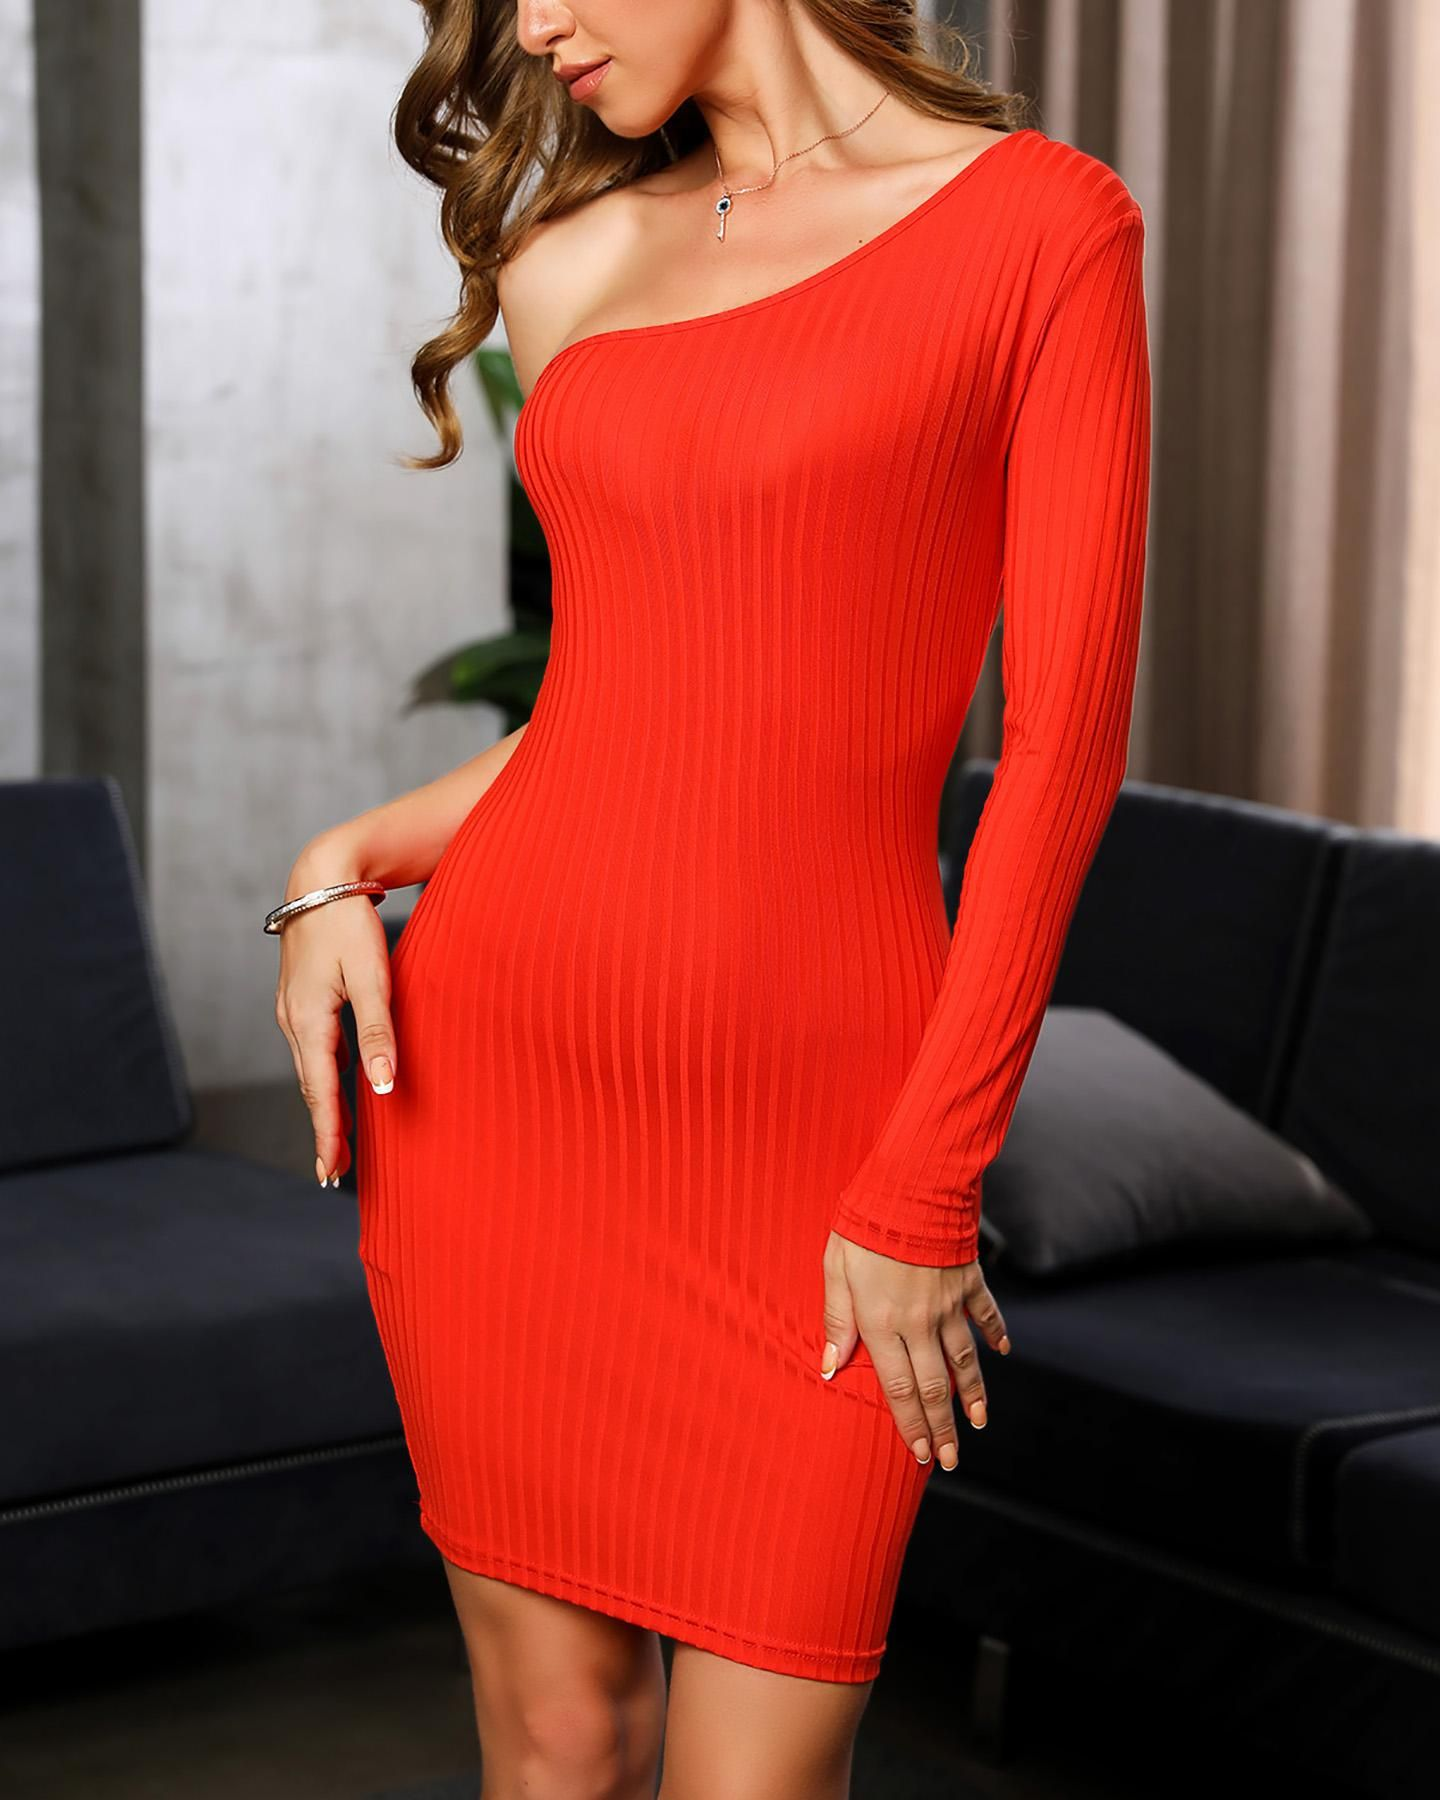 Long sleeve bodycon dress for a party